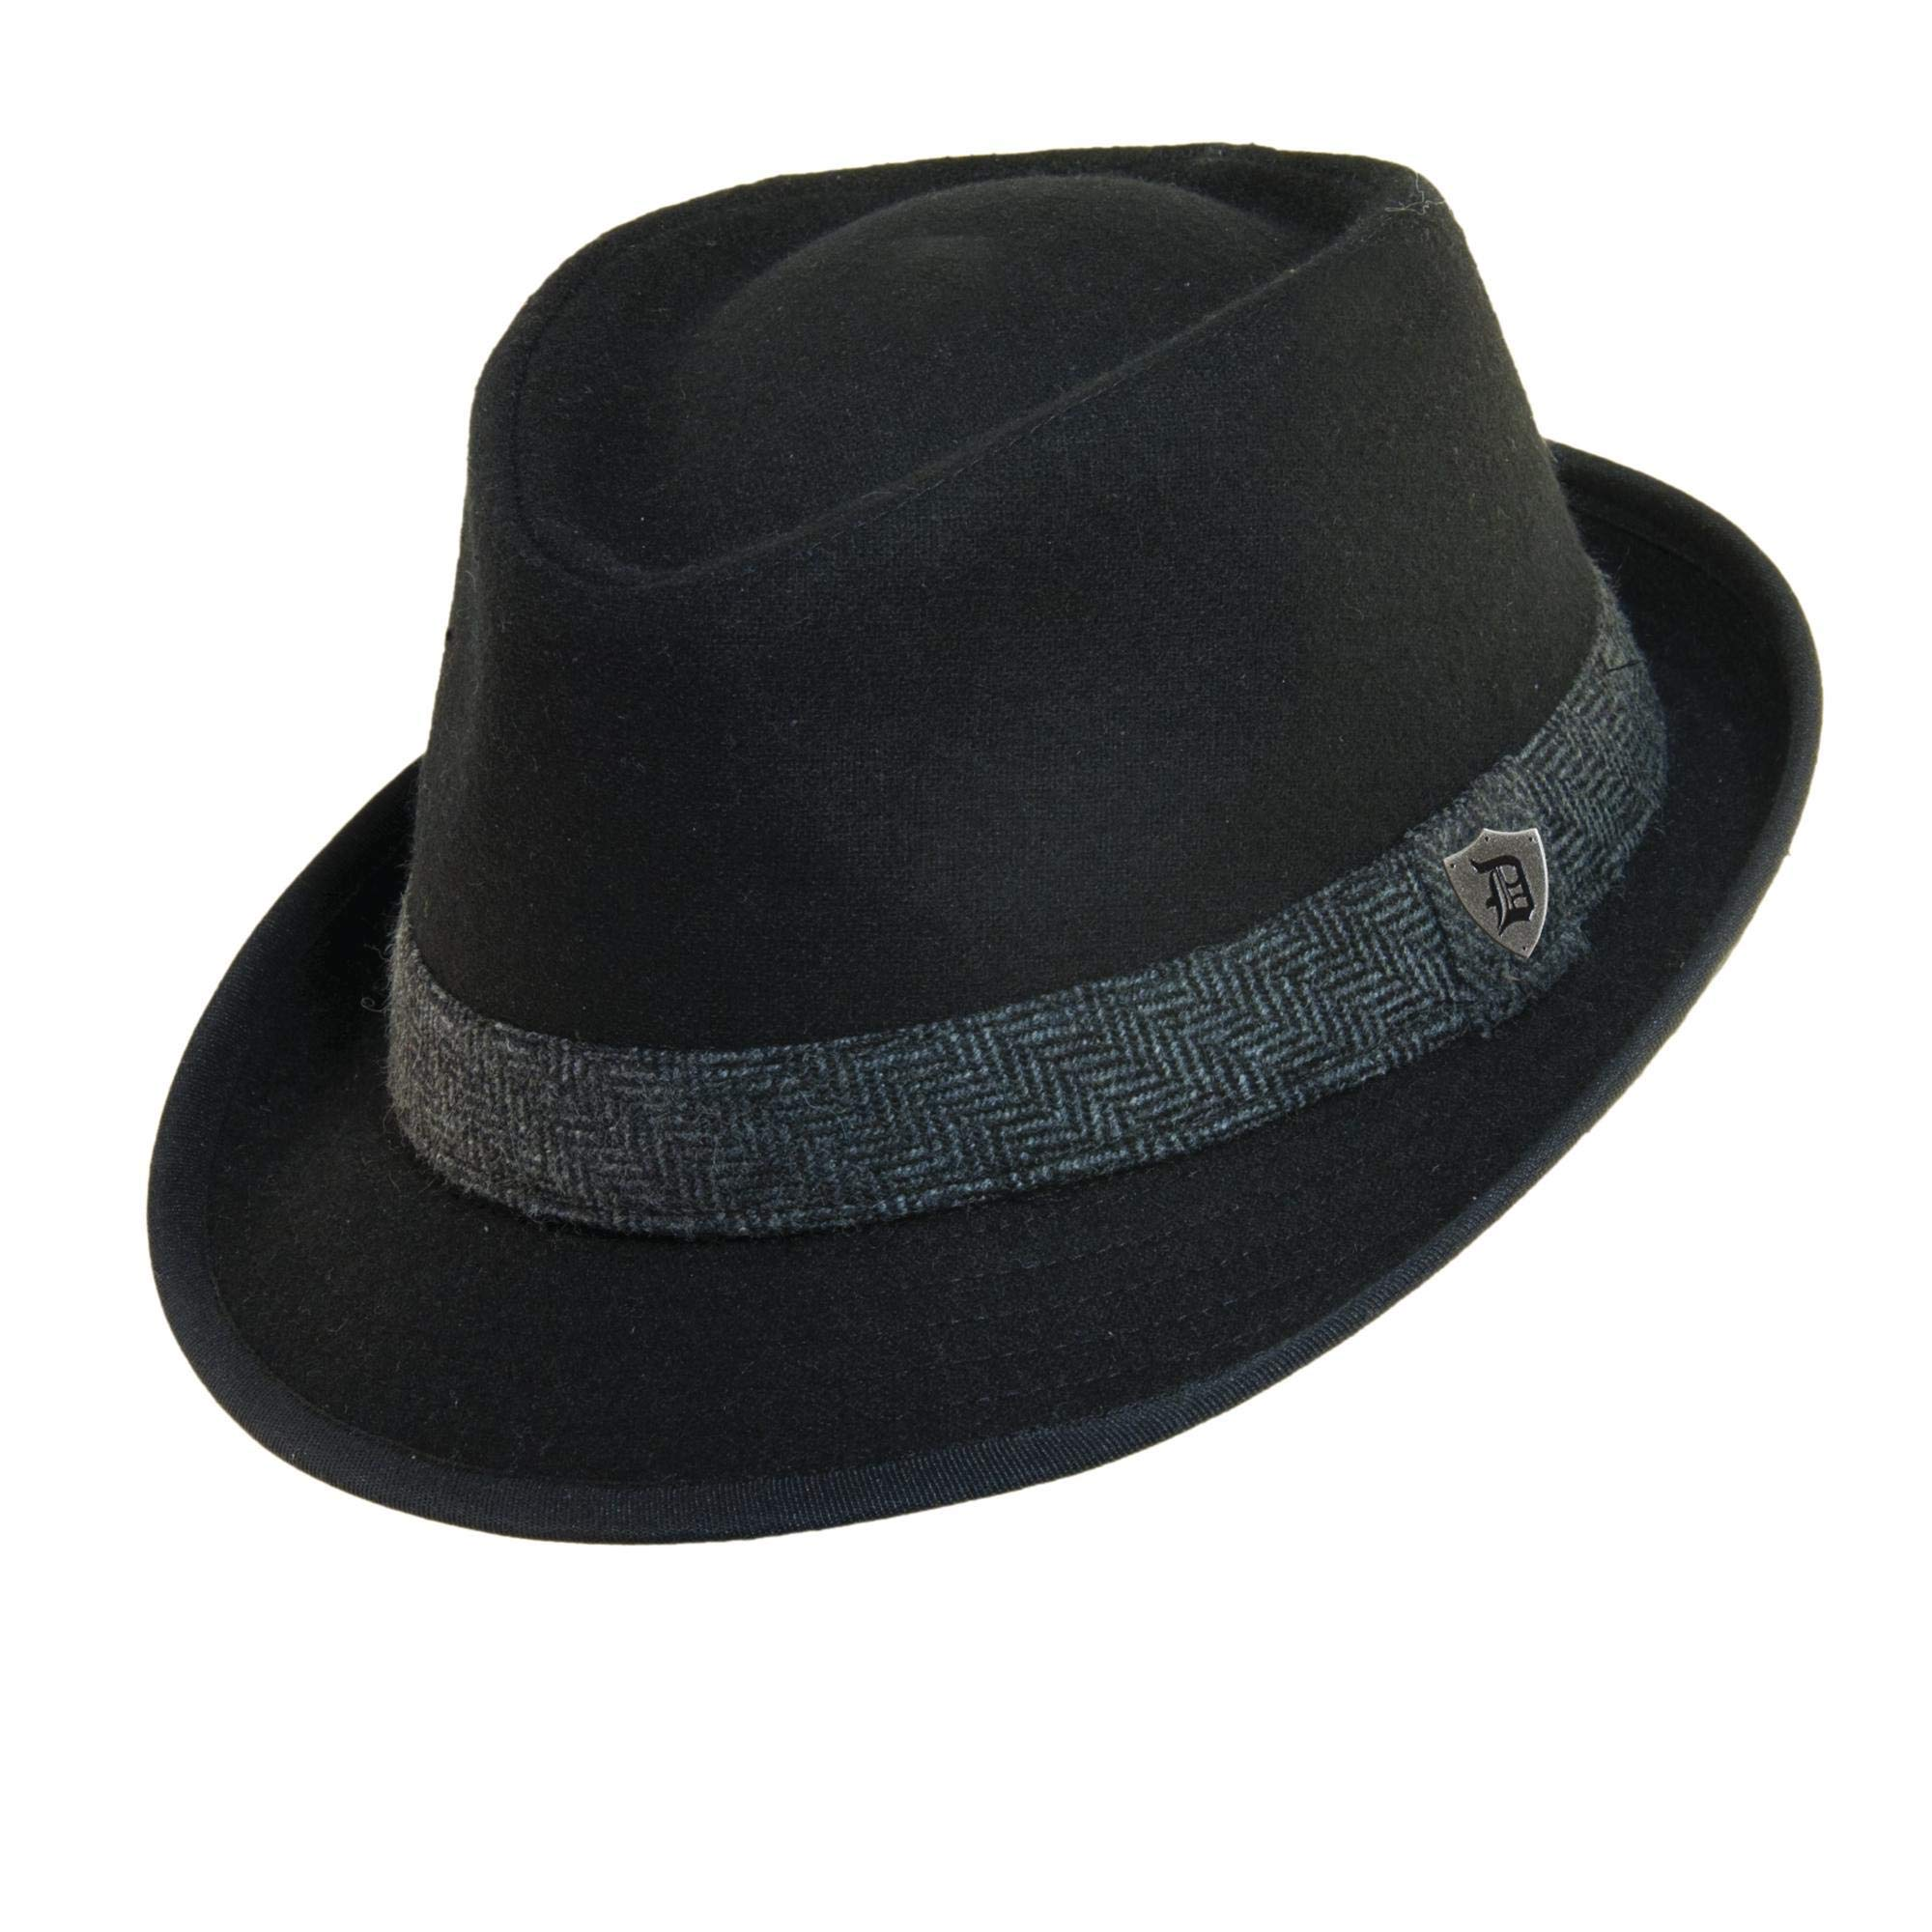 c8e050d32 Best Rated in Men's Fedoras & Helpful Customer Reviews - Amazon.com